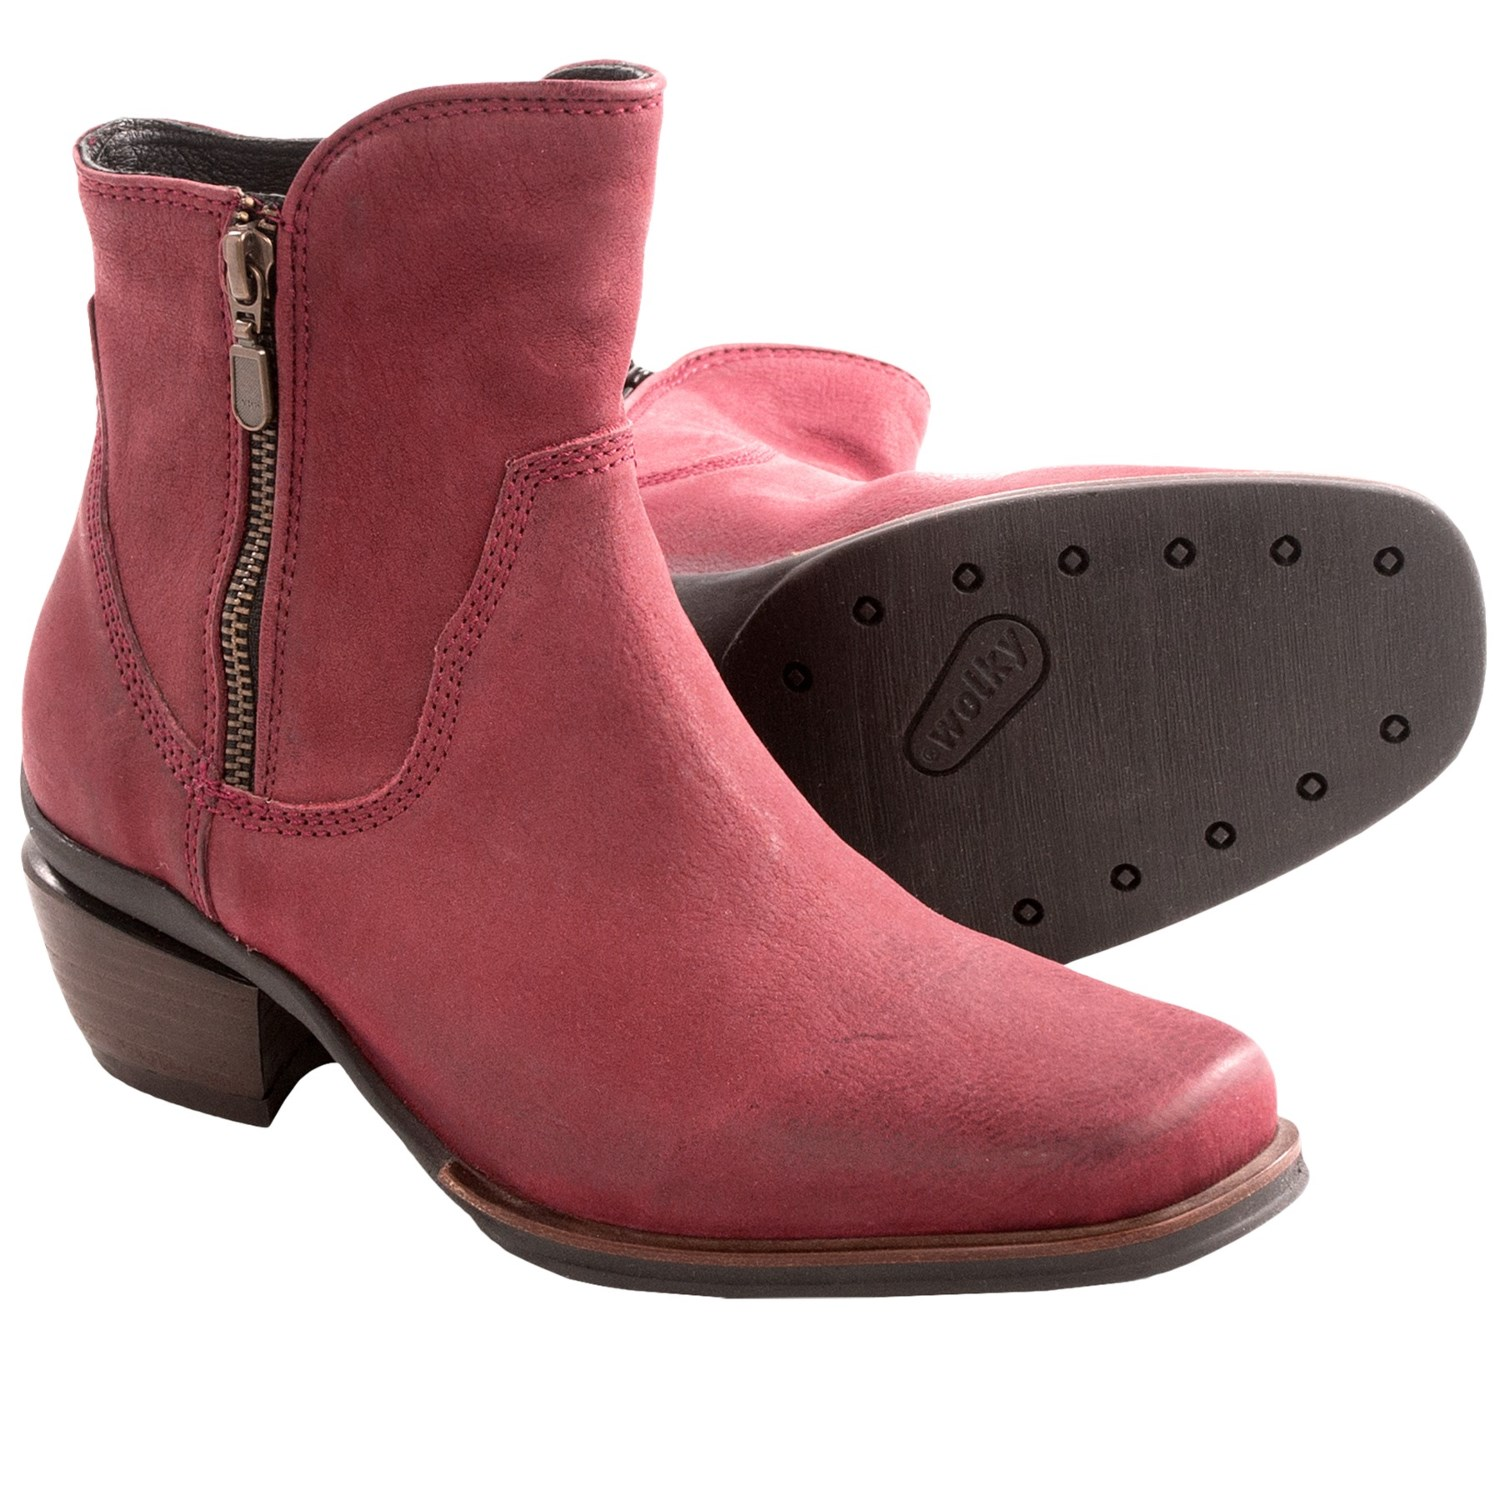 wolky alpine ankle boots for save 35